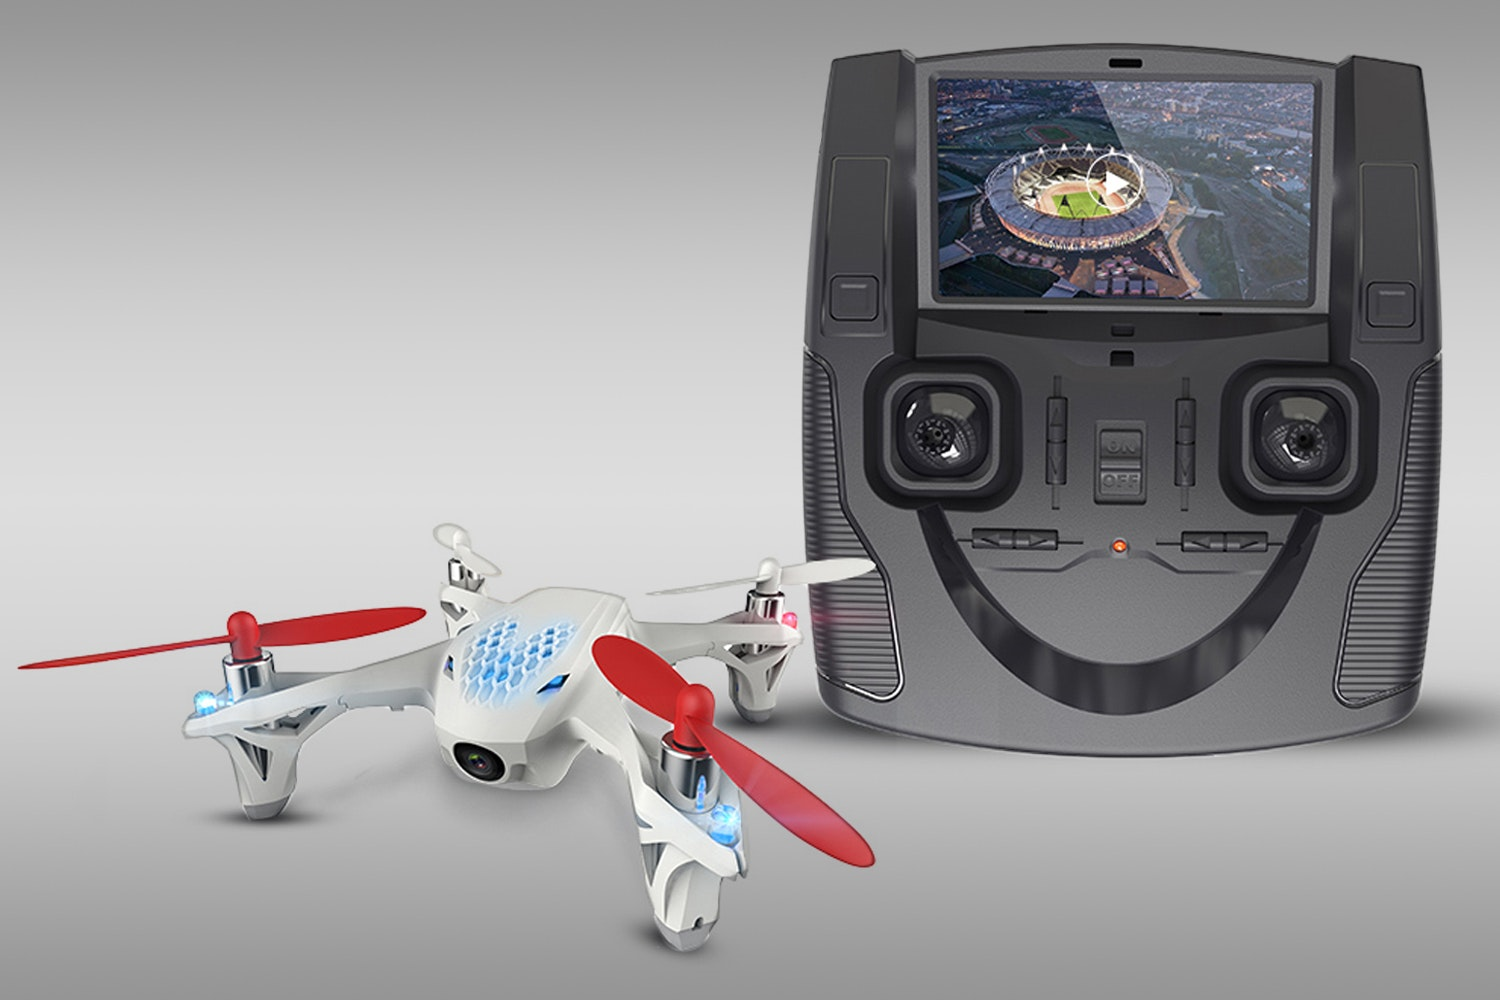 Hubsan X4 H107D with FPV Live Video Feed